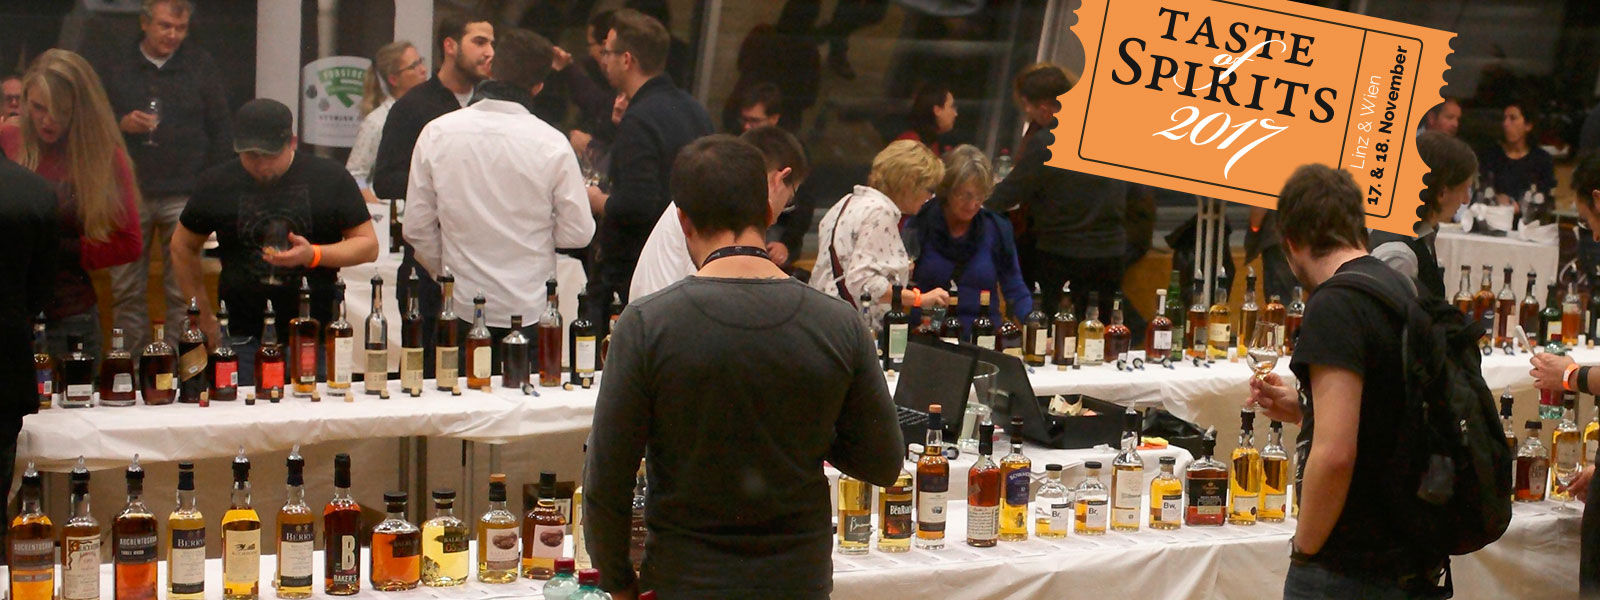 The exclusive tasting opportunity …